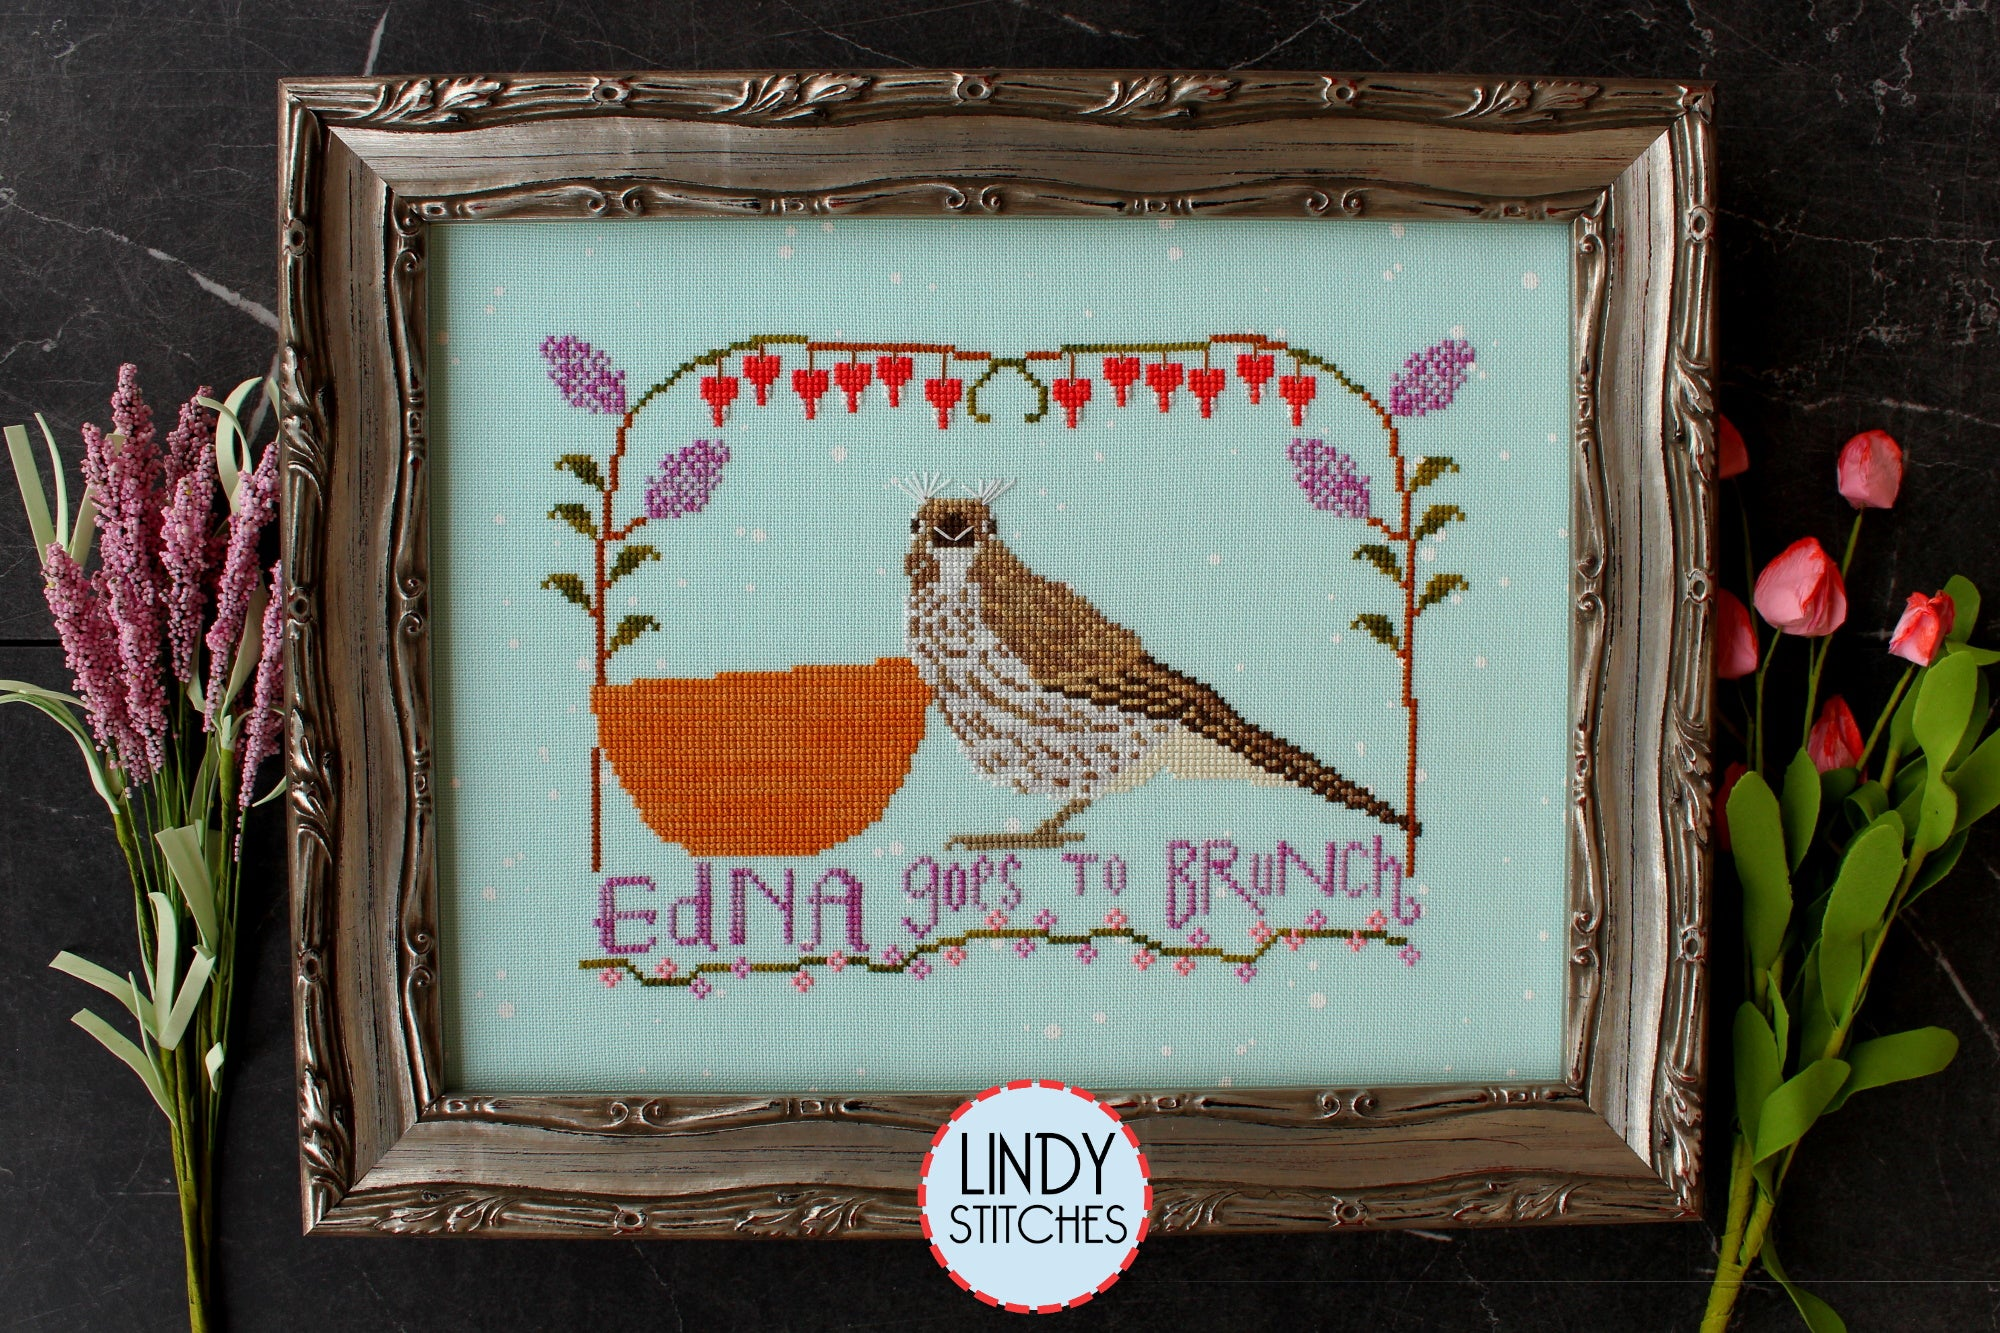 Edna Goes To Brunch by Stephanie Webb of Lindy Stitches cross stitch chart 2021